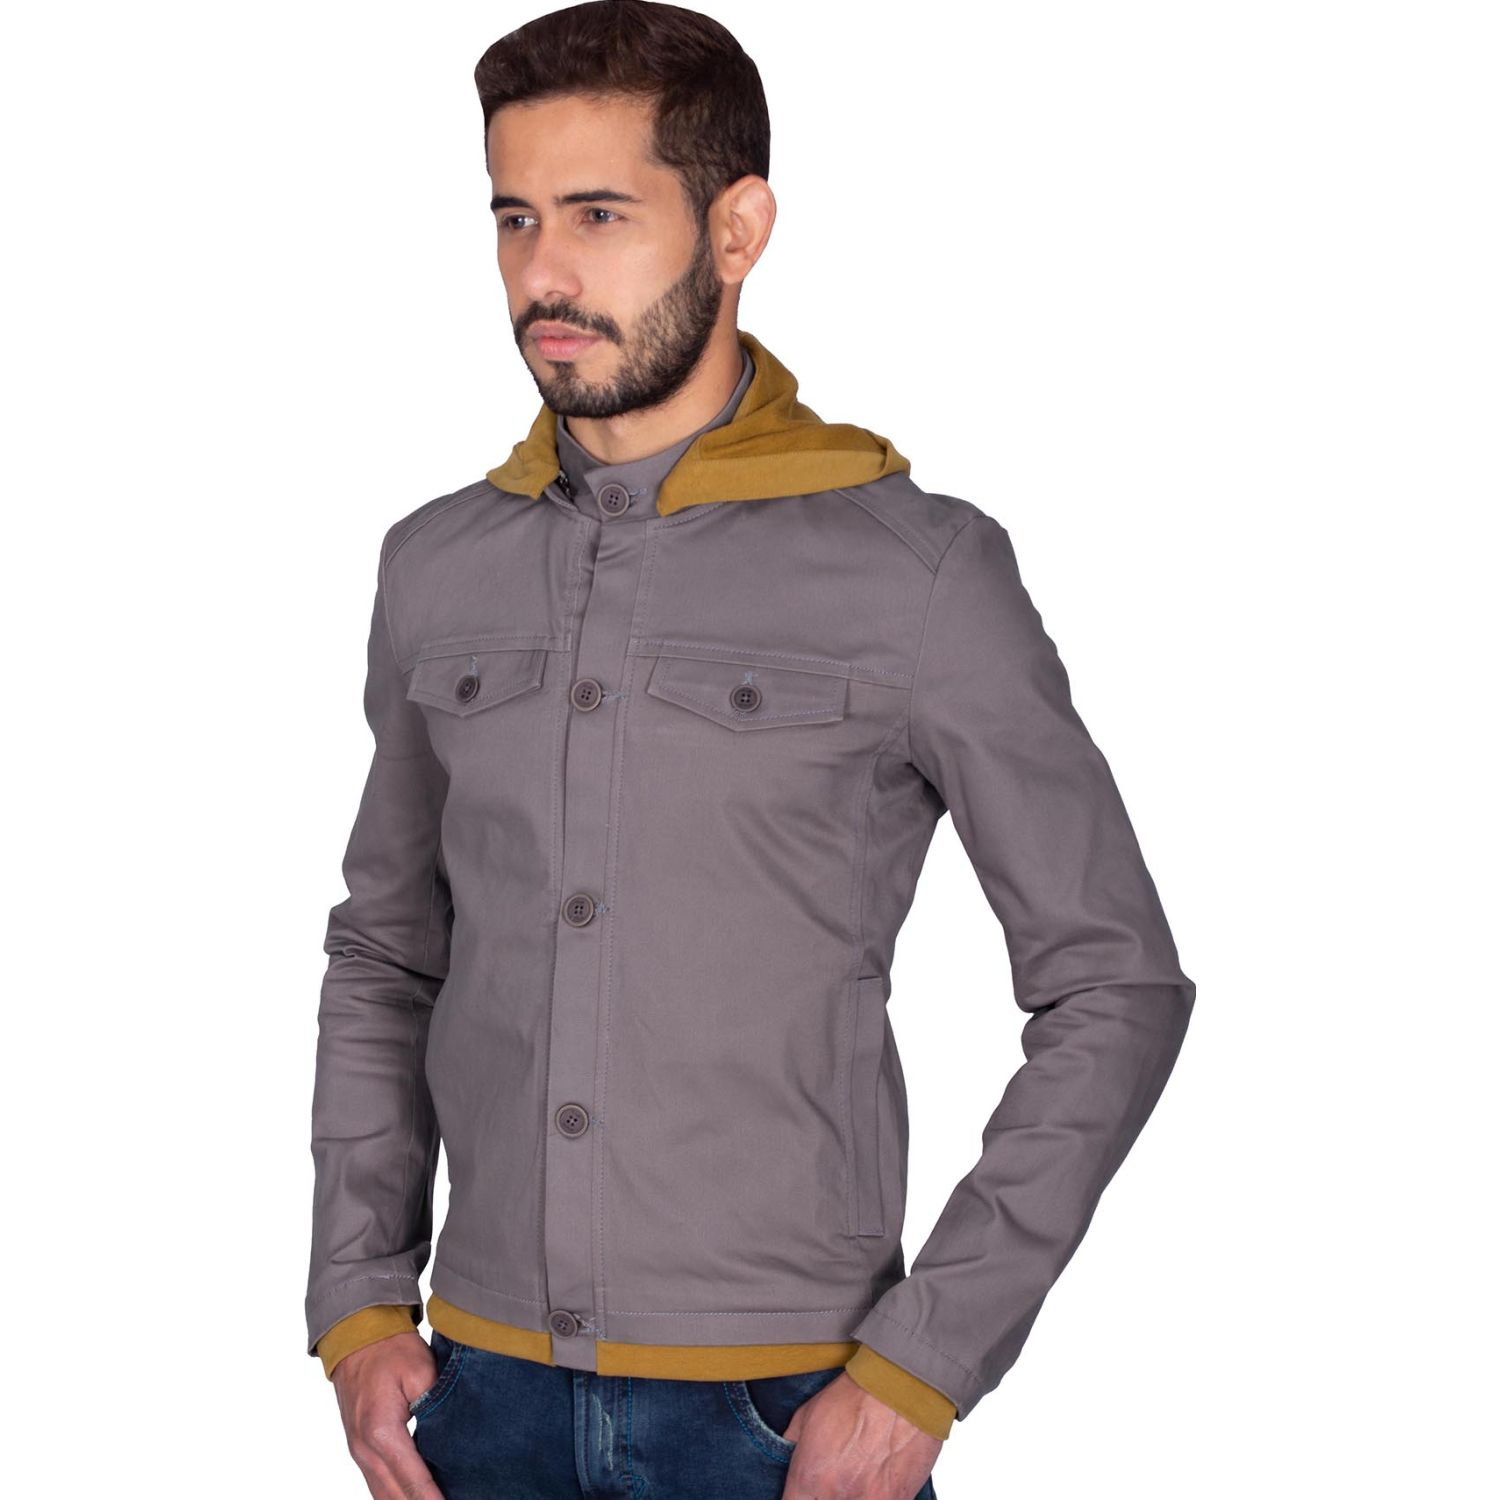 The Cult Casaca Drill, Slim Fit, Teñido Marron / Beige Denim